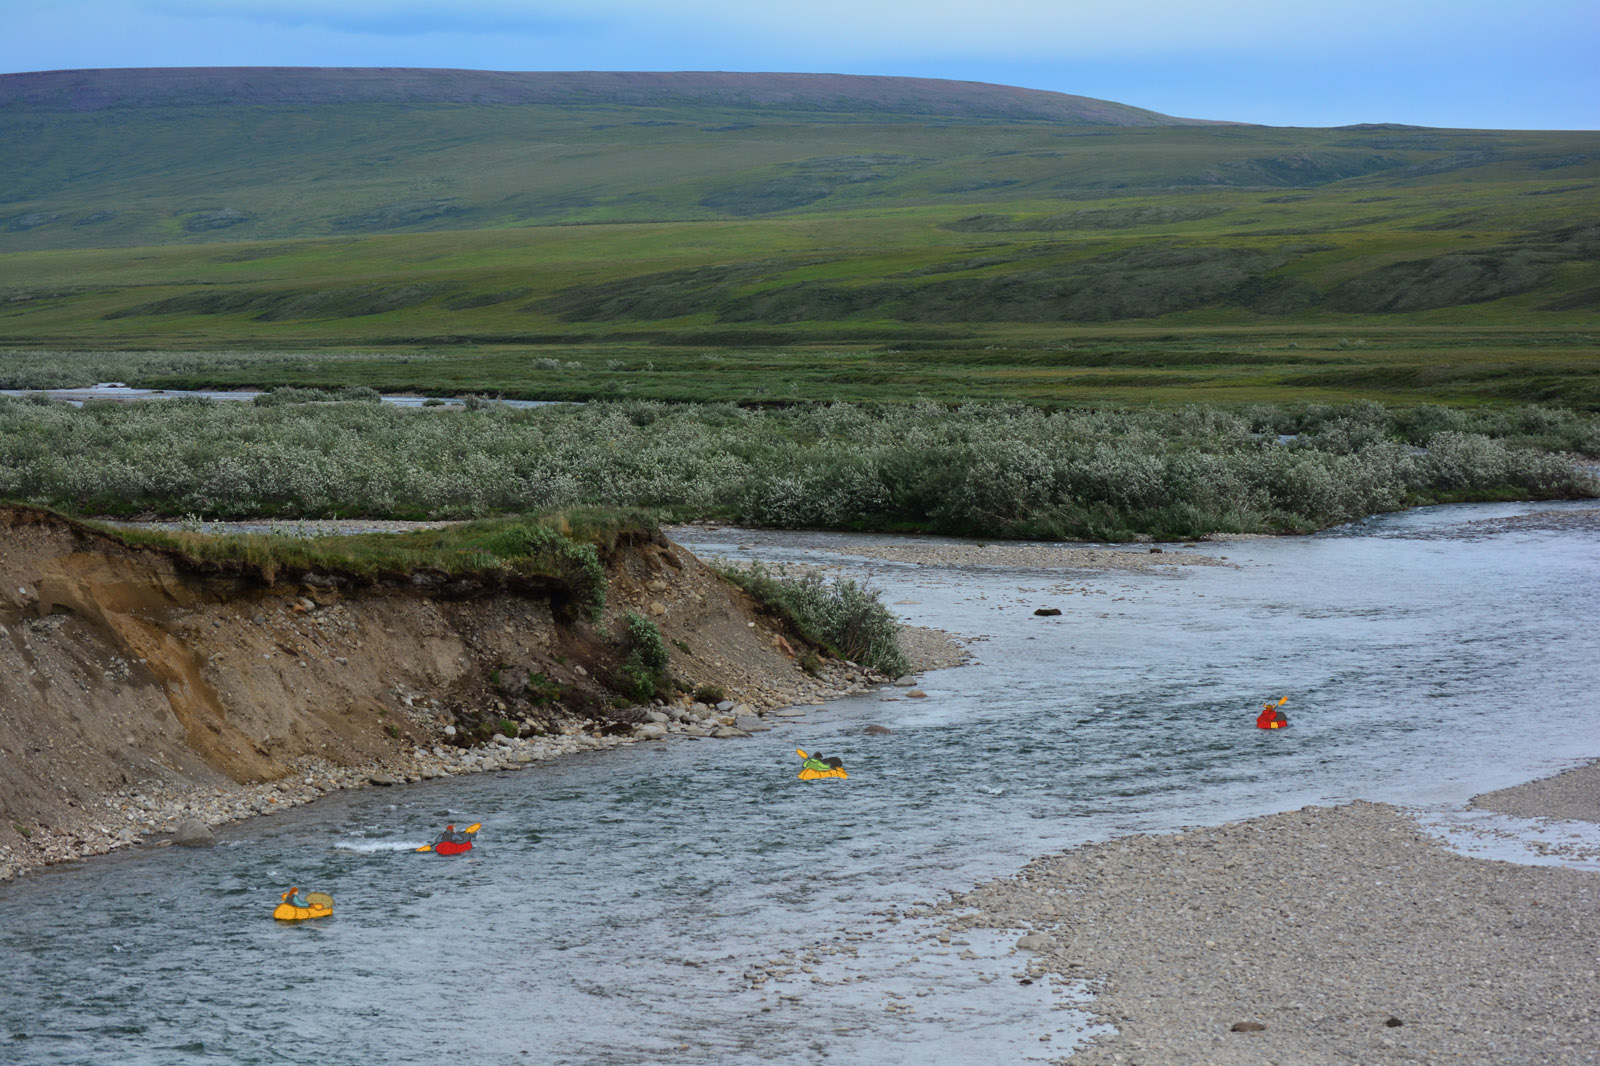 Four packrafters packrafting down the Anaktuvuk River, with the tundra hills of the North Slope in the background